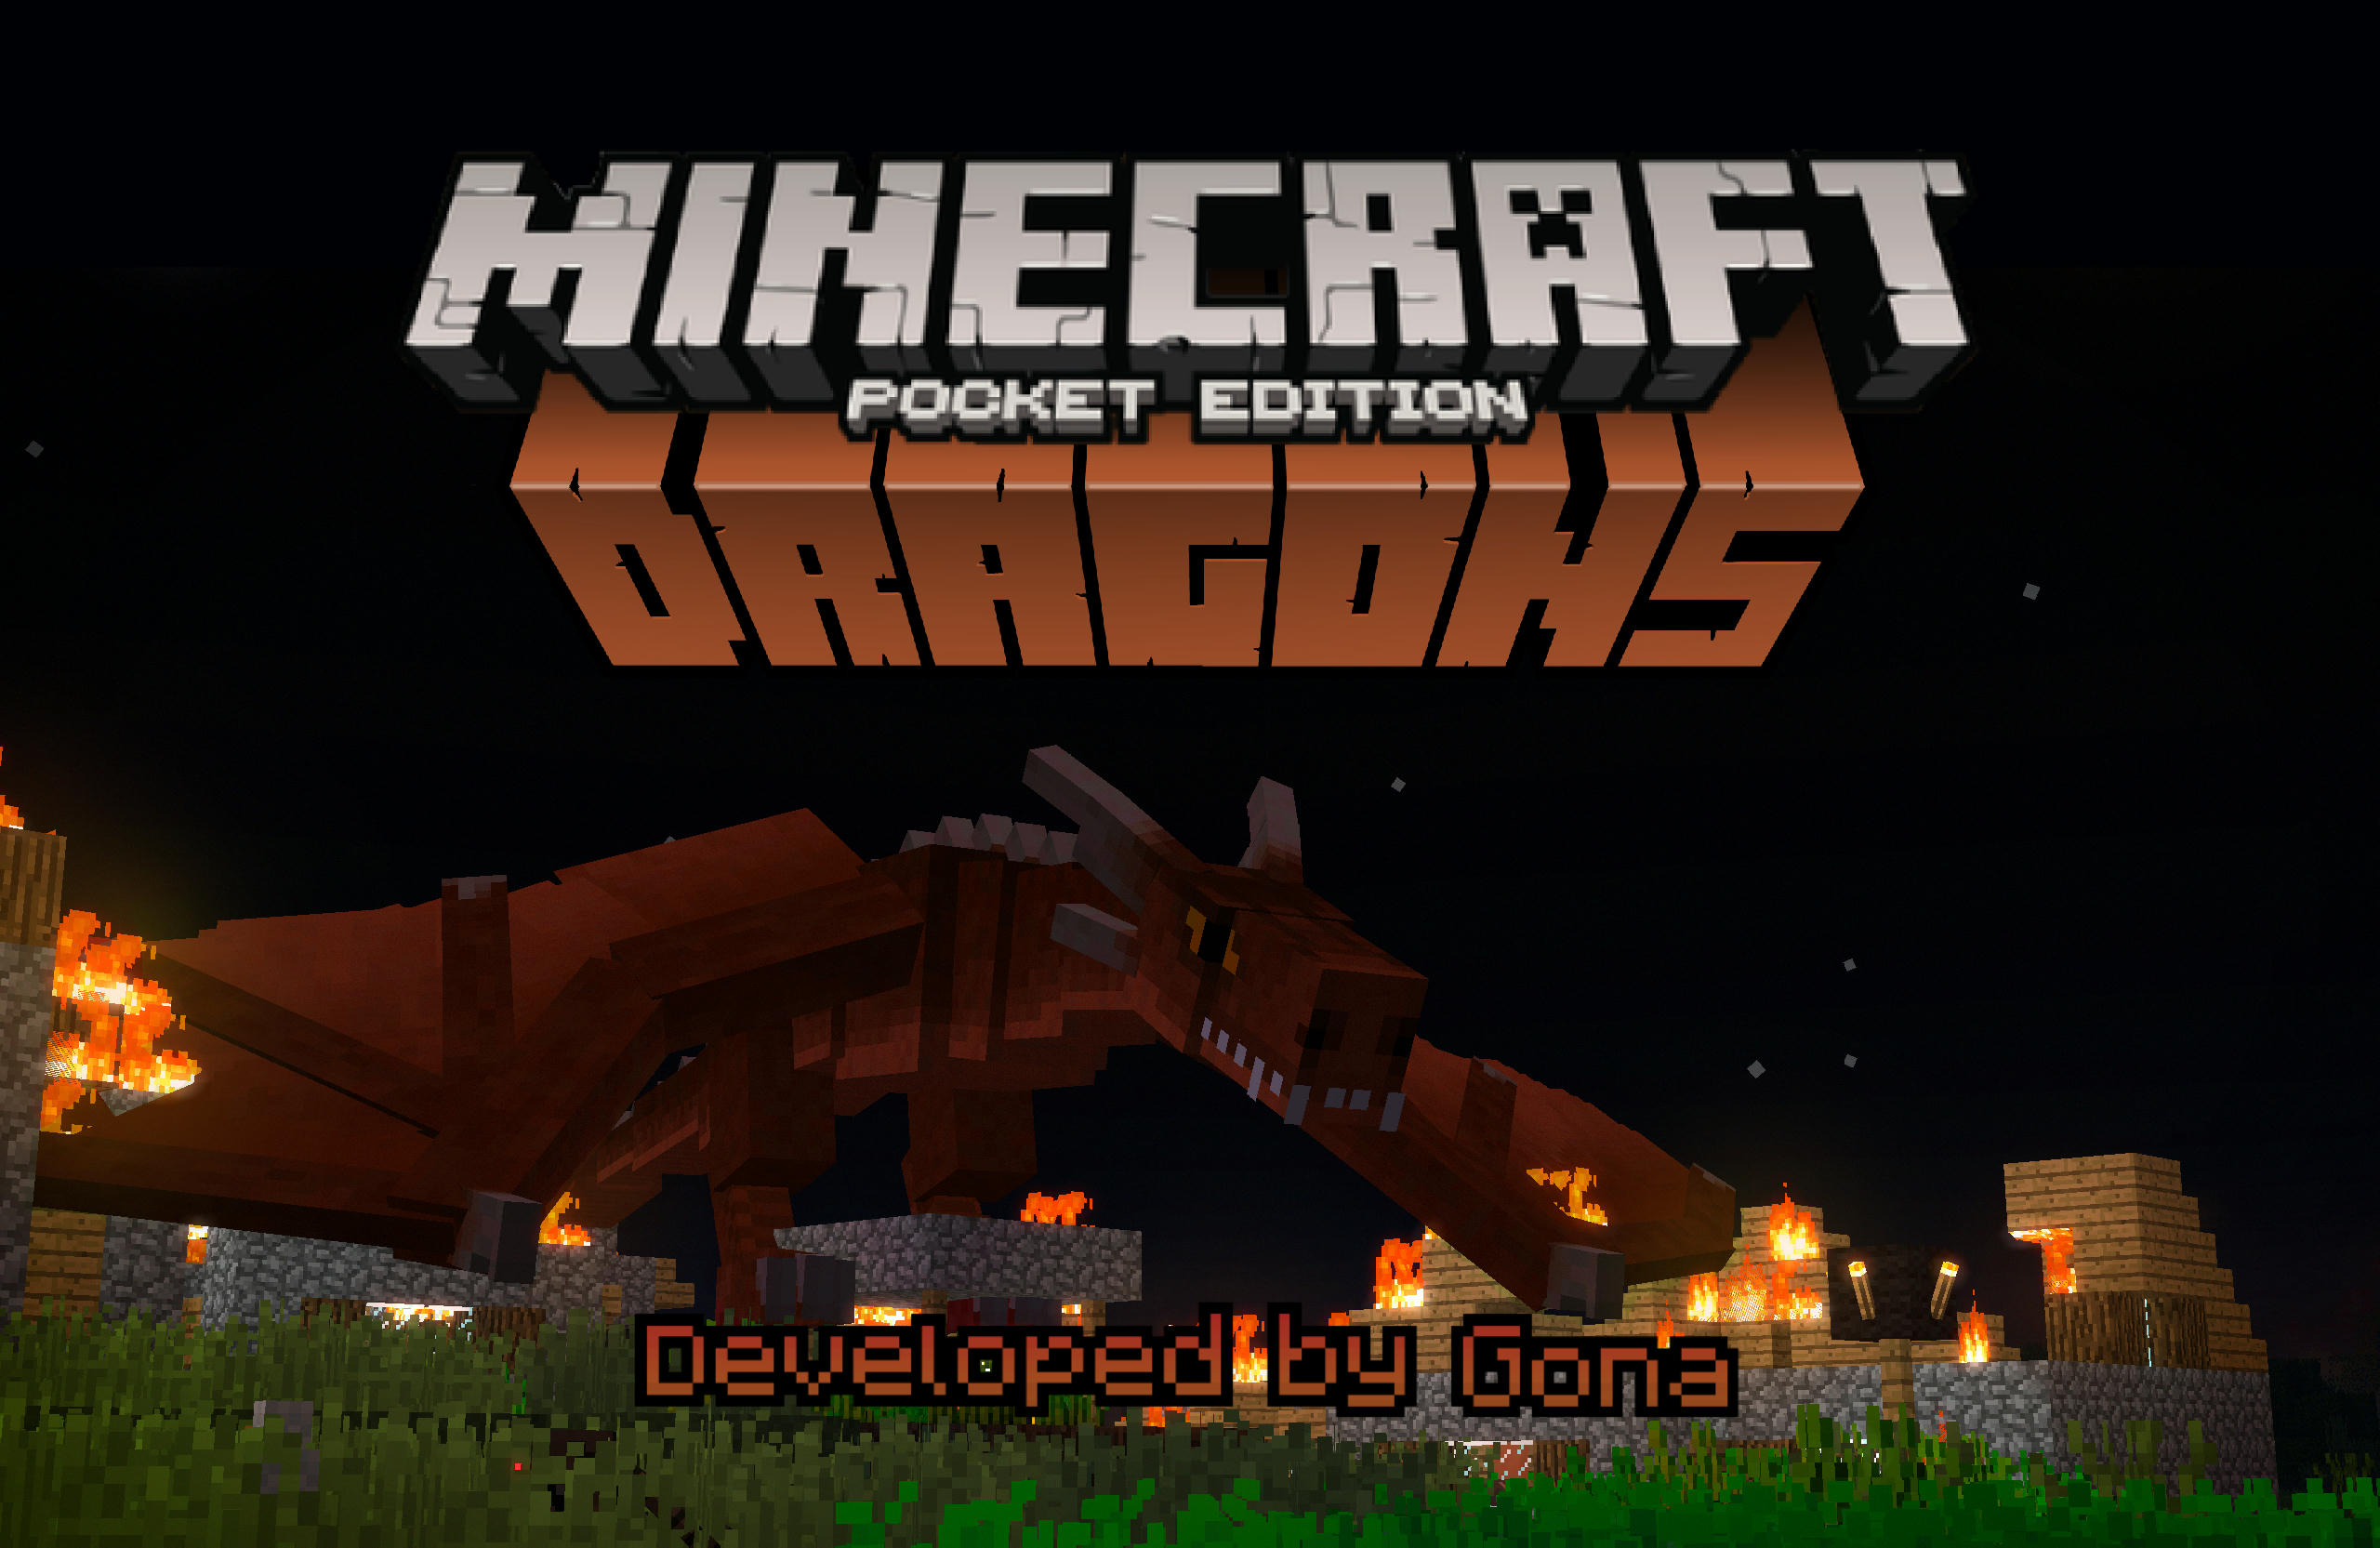 Dragons Add-On!!! Train your own dragon! Android, iOS, Win10